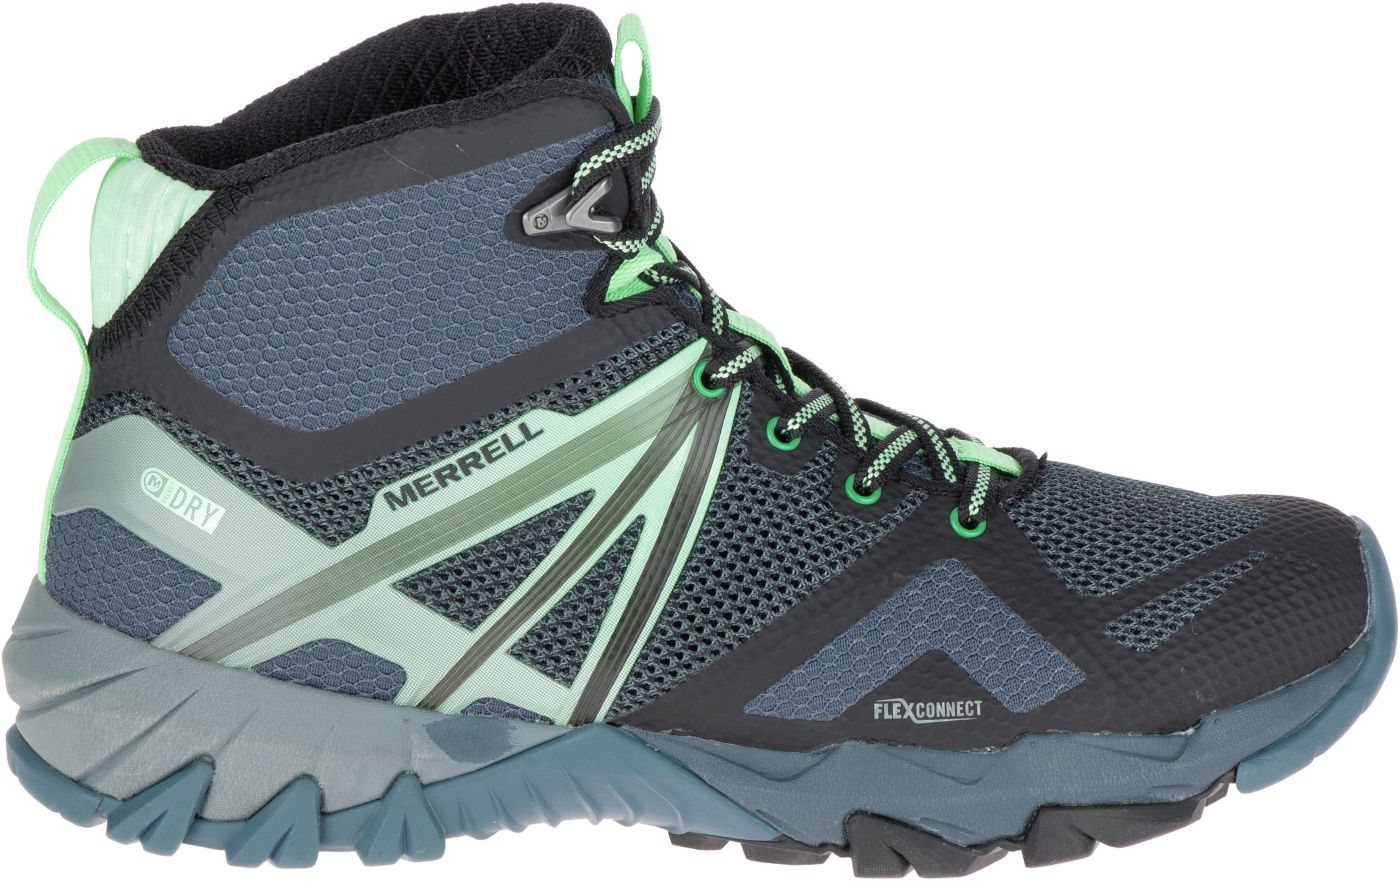 Merrell Women's MQM Flex Mid Waterproof Hiking Boots